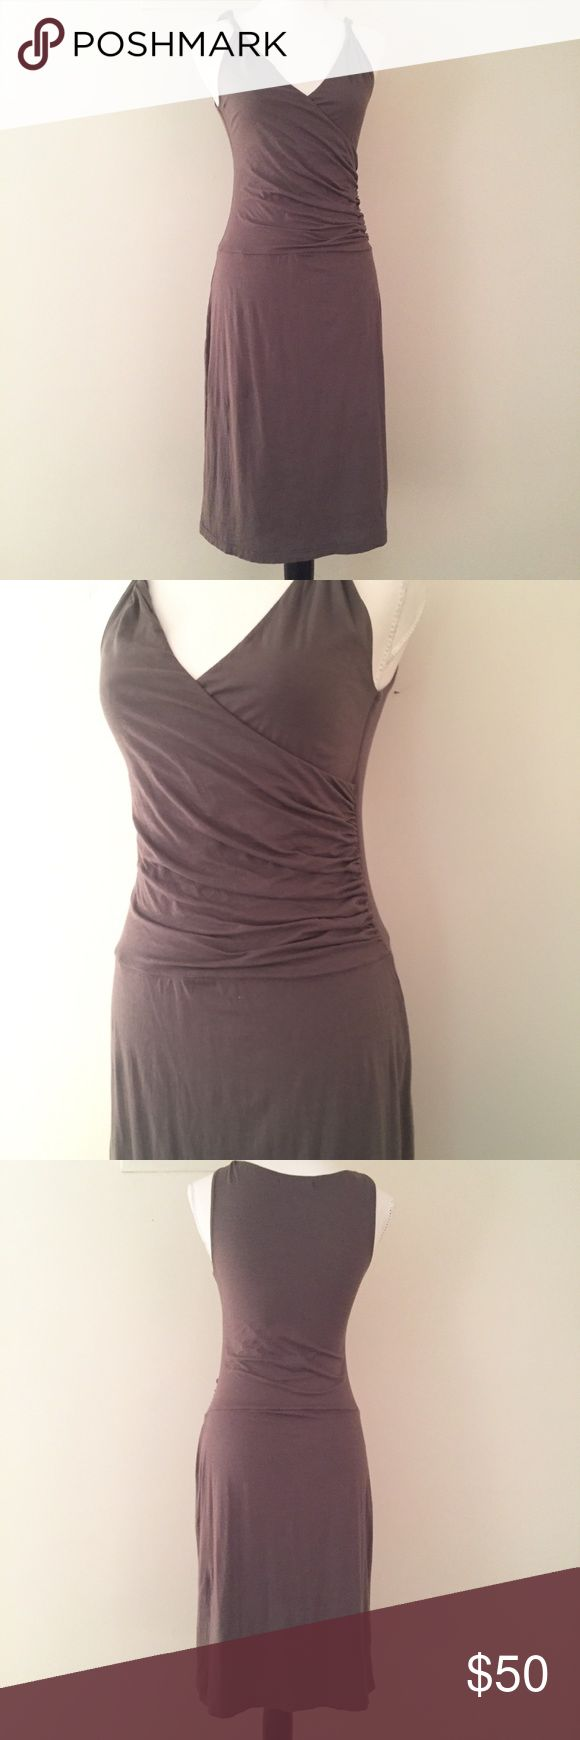 Velvet by Graham & Spencer cotton knit dress M Velvet by Graham & Spencer cotton knit dress. Gorgeous deep taupe in the softest & stretchiest of cotton.  Double thickness lined.  This dress can go anywhere dresses up with heels or casual with a denim jacket. Velvet Dresses